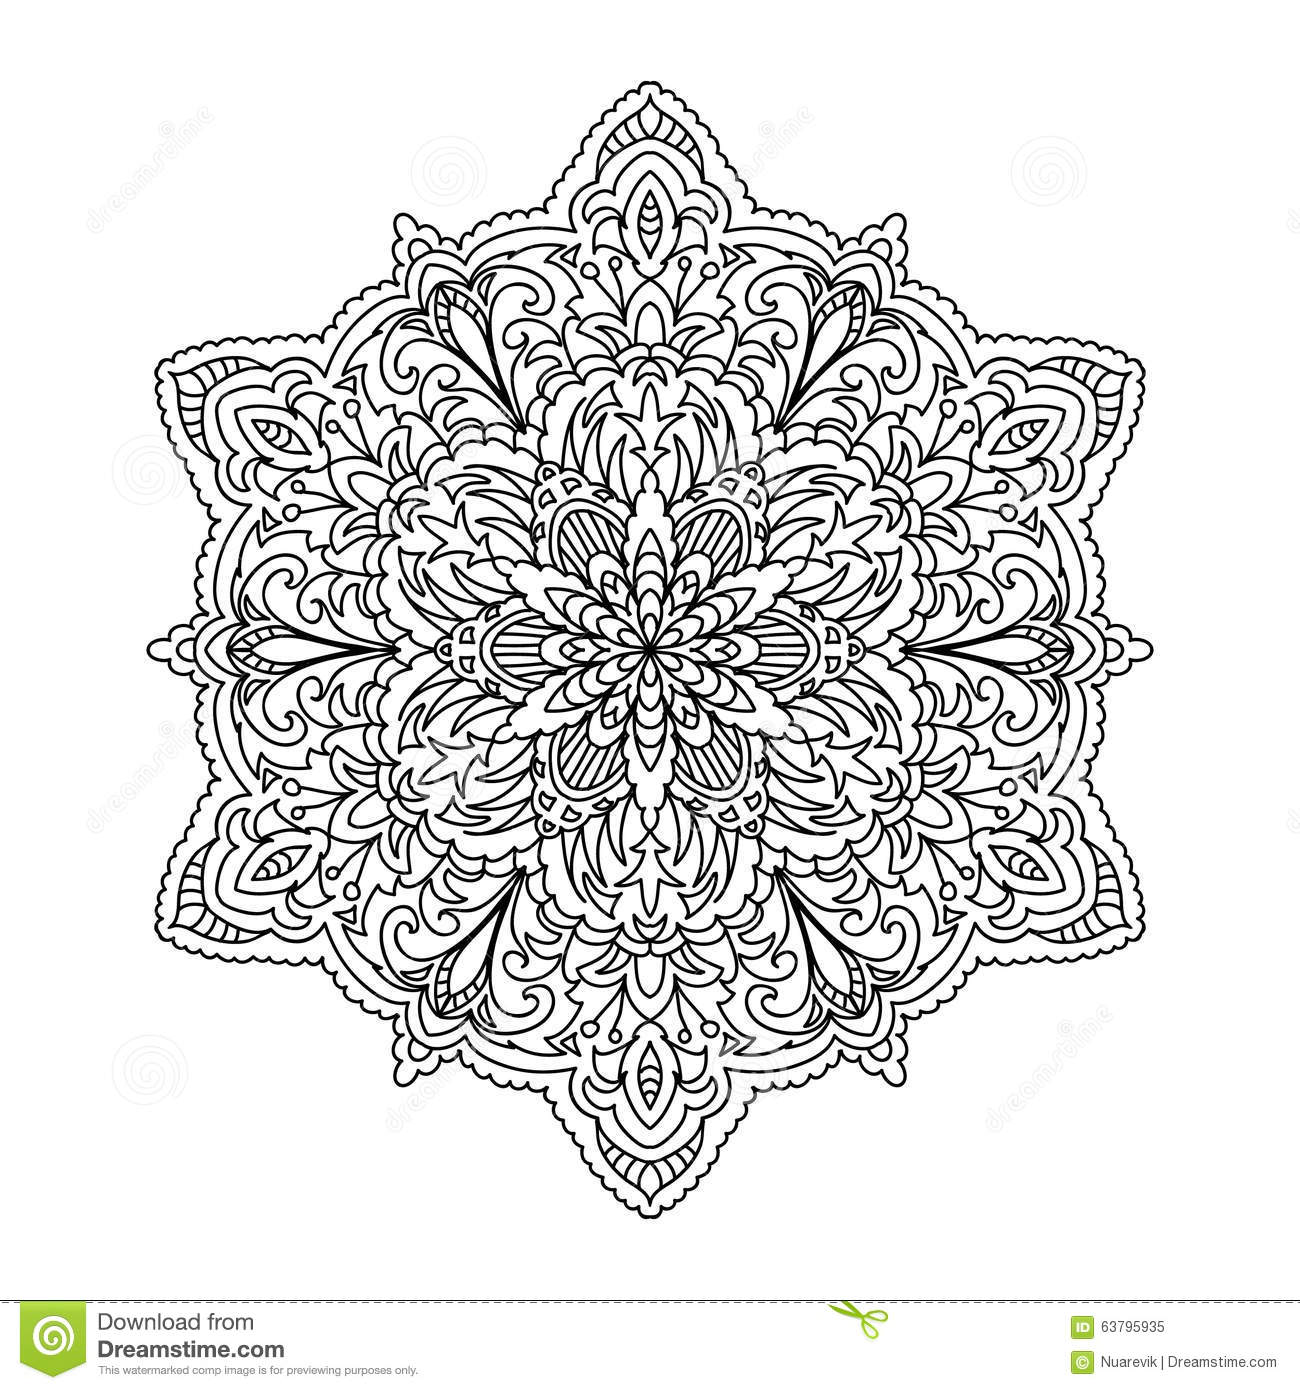 Abstraktes Mandala Zentangle Stock Abbildung - Illustration von ...